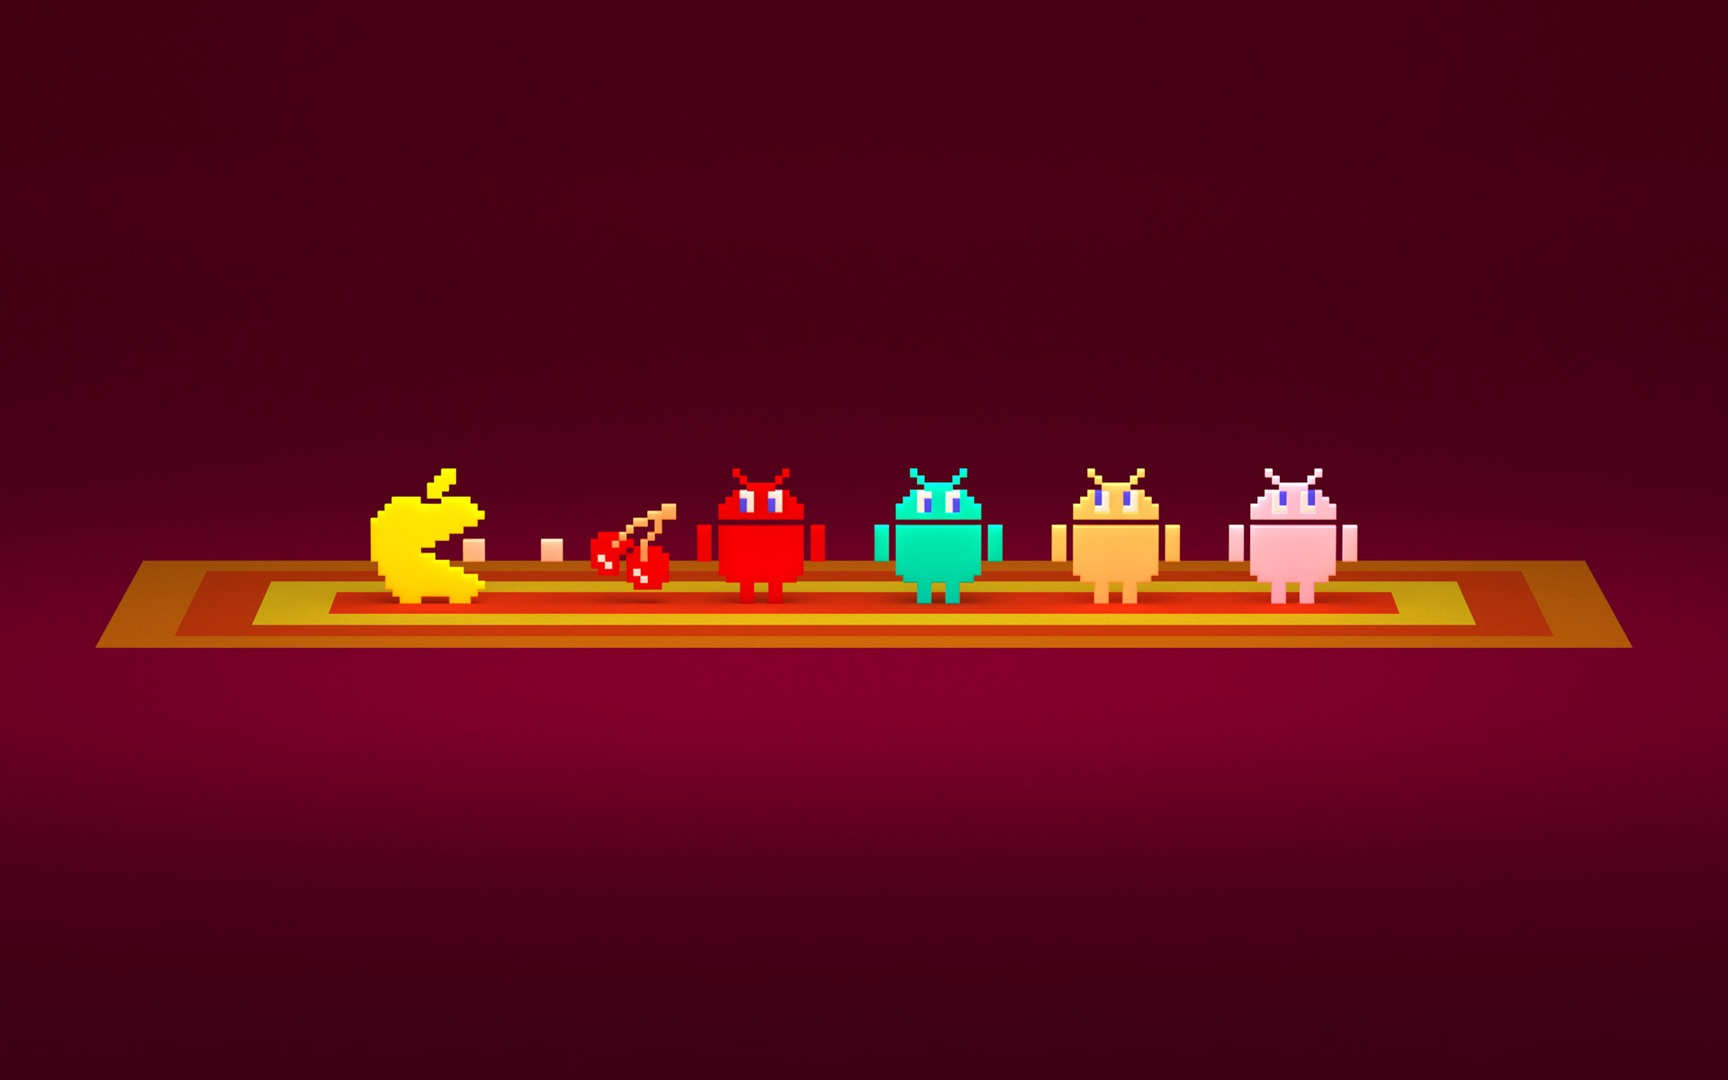 Pac Man Apple and Android logos wallpaper 13863 1728x1080